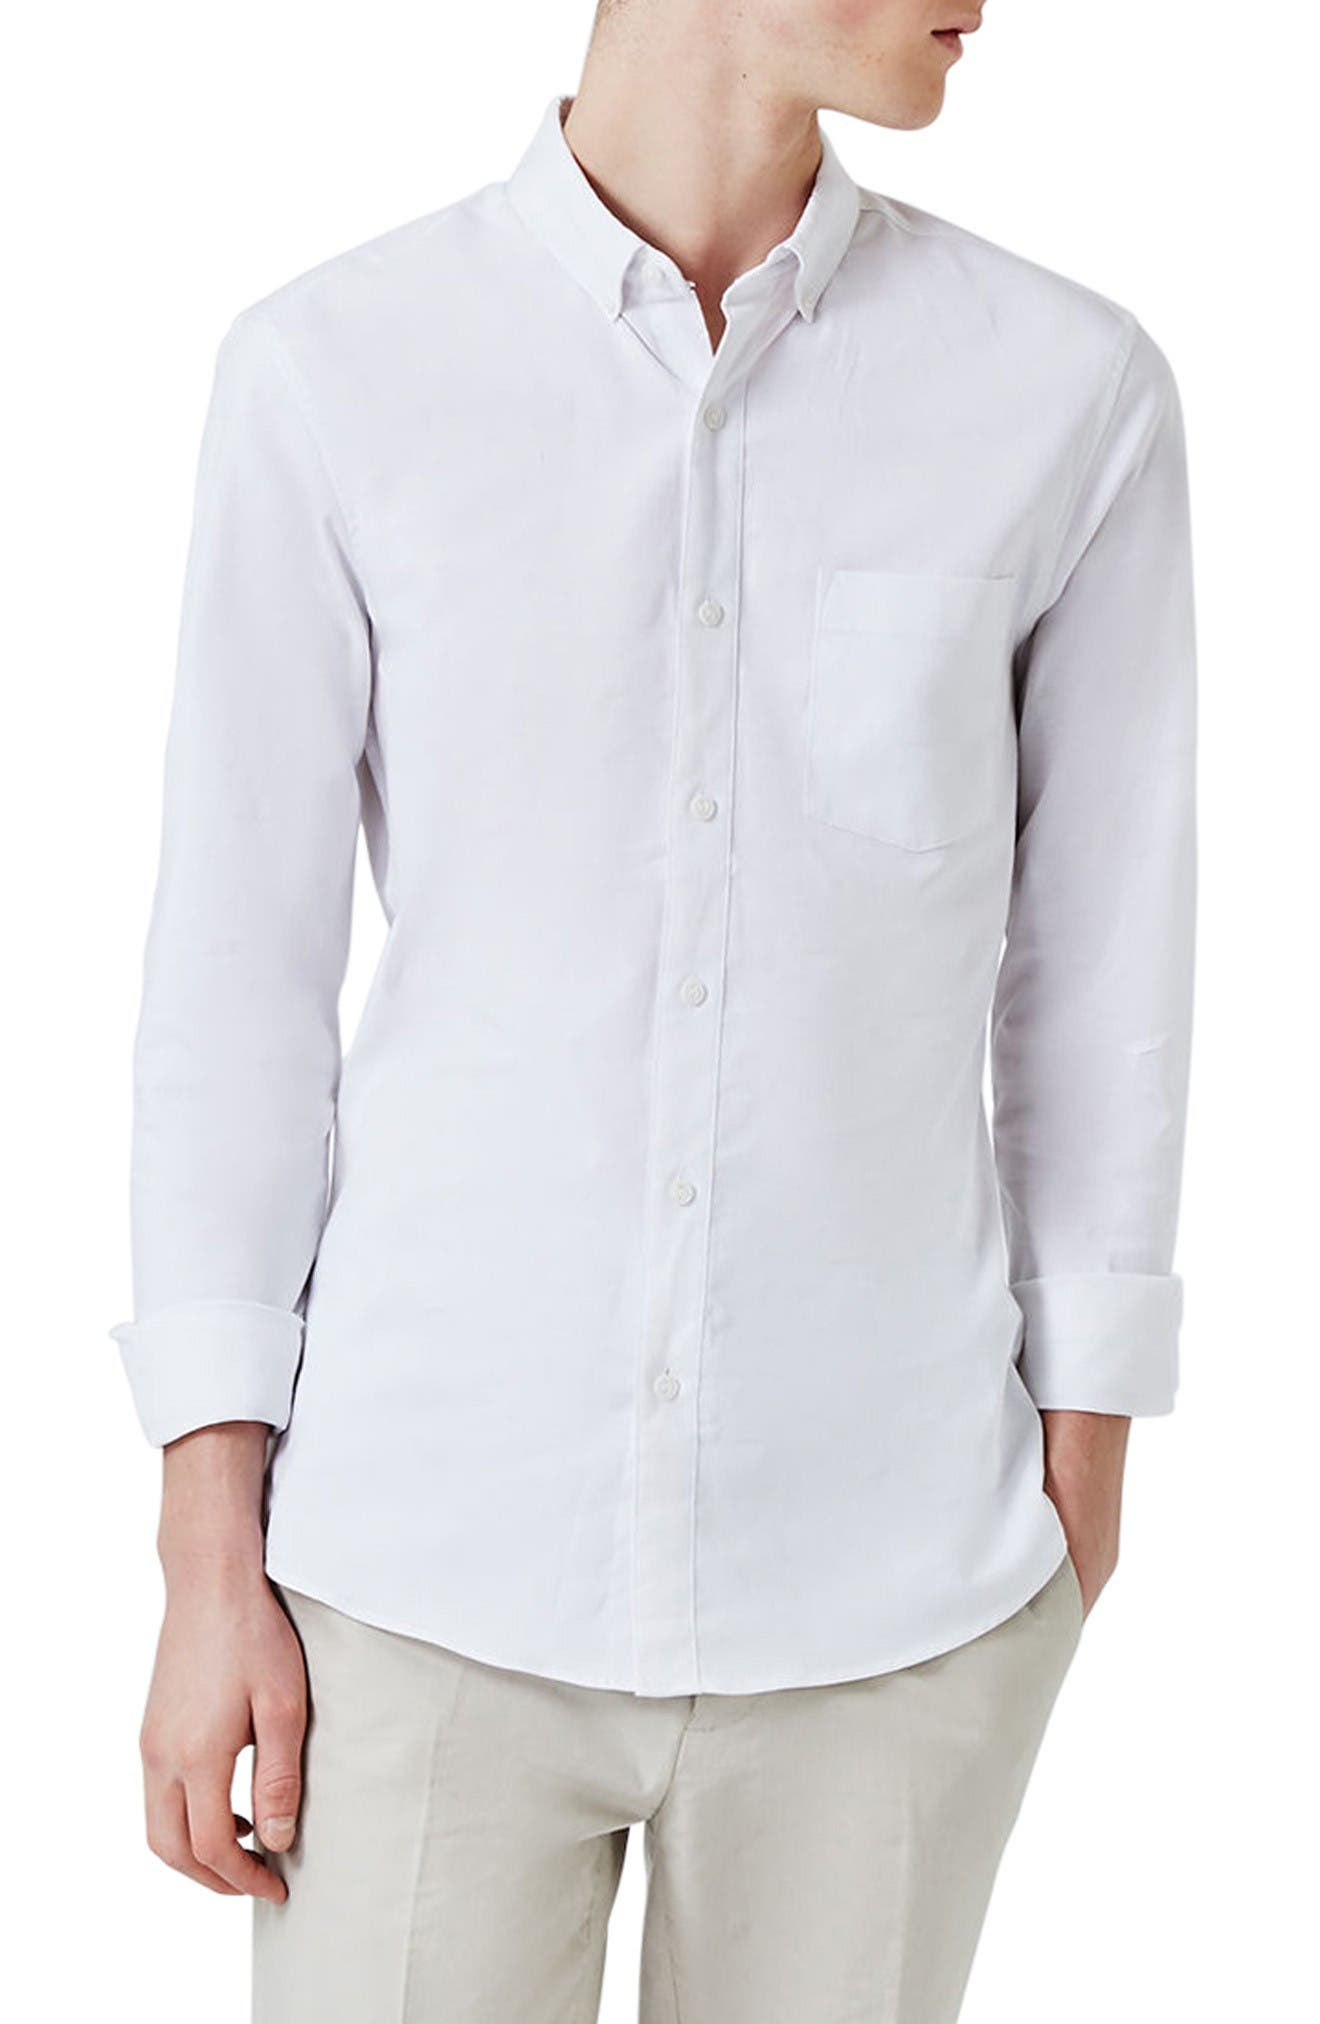 Muscle Fit Oxford Shirt,                         Main,                         color, White